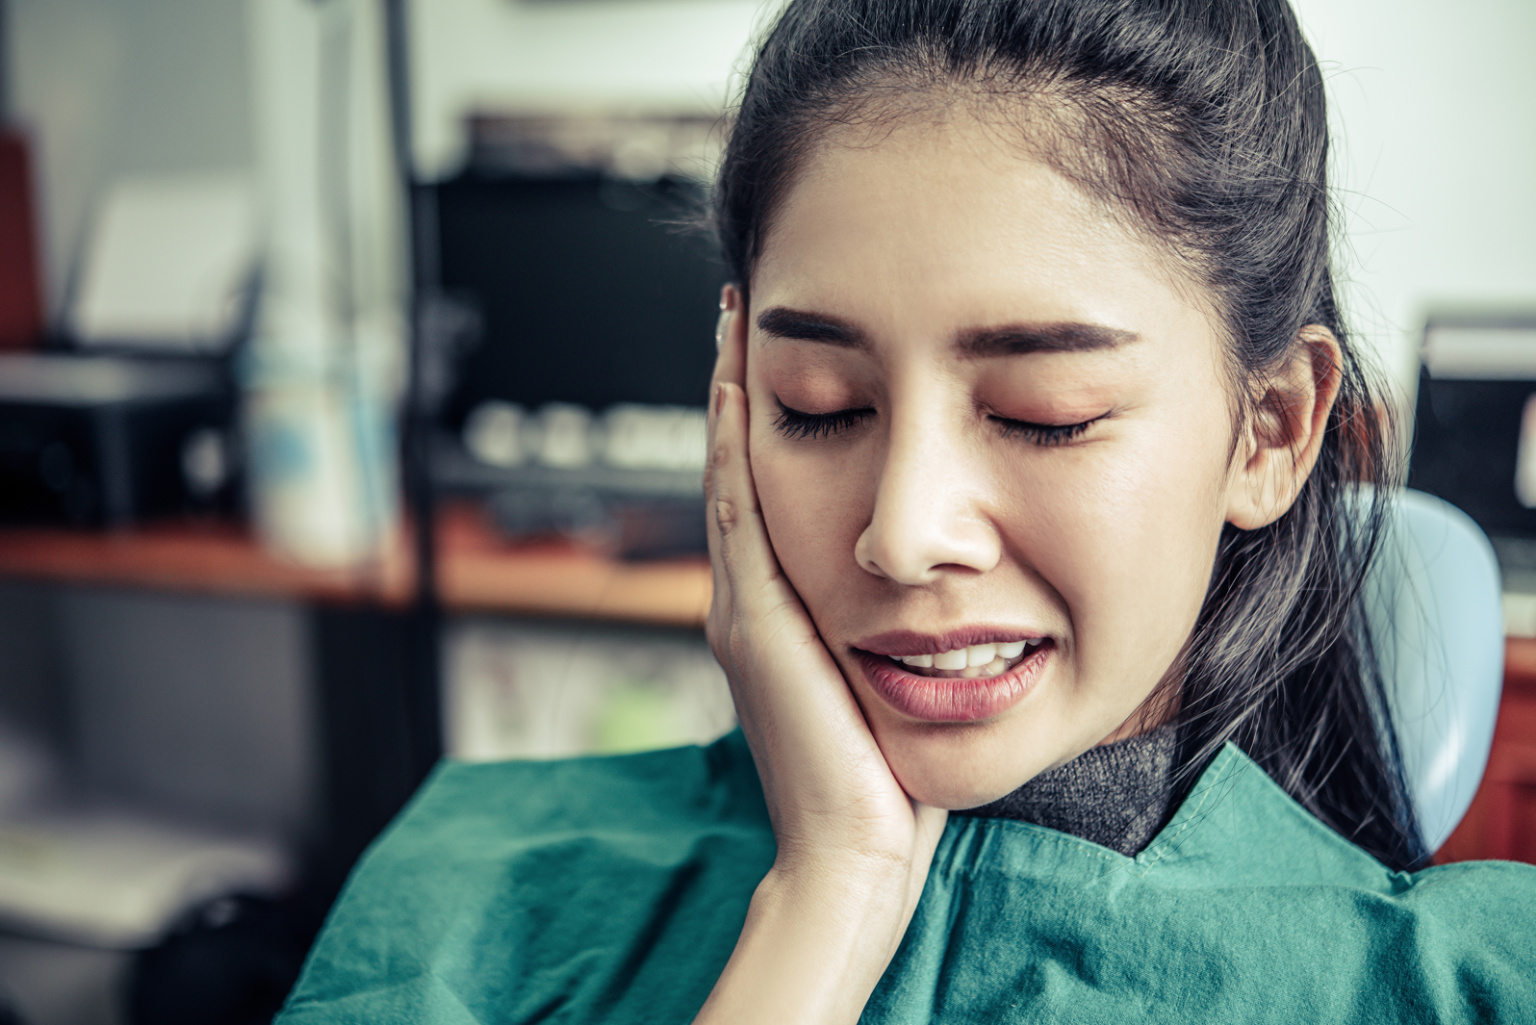 Starting To Feel Tooth Aches and Pains?